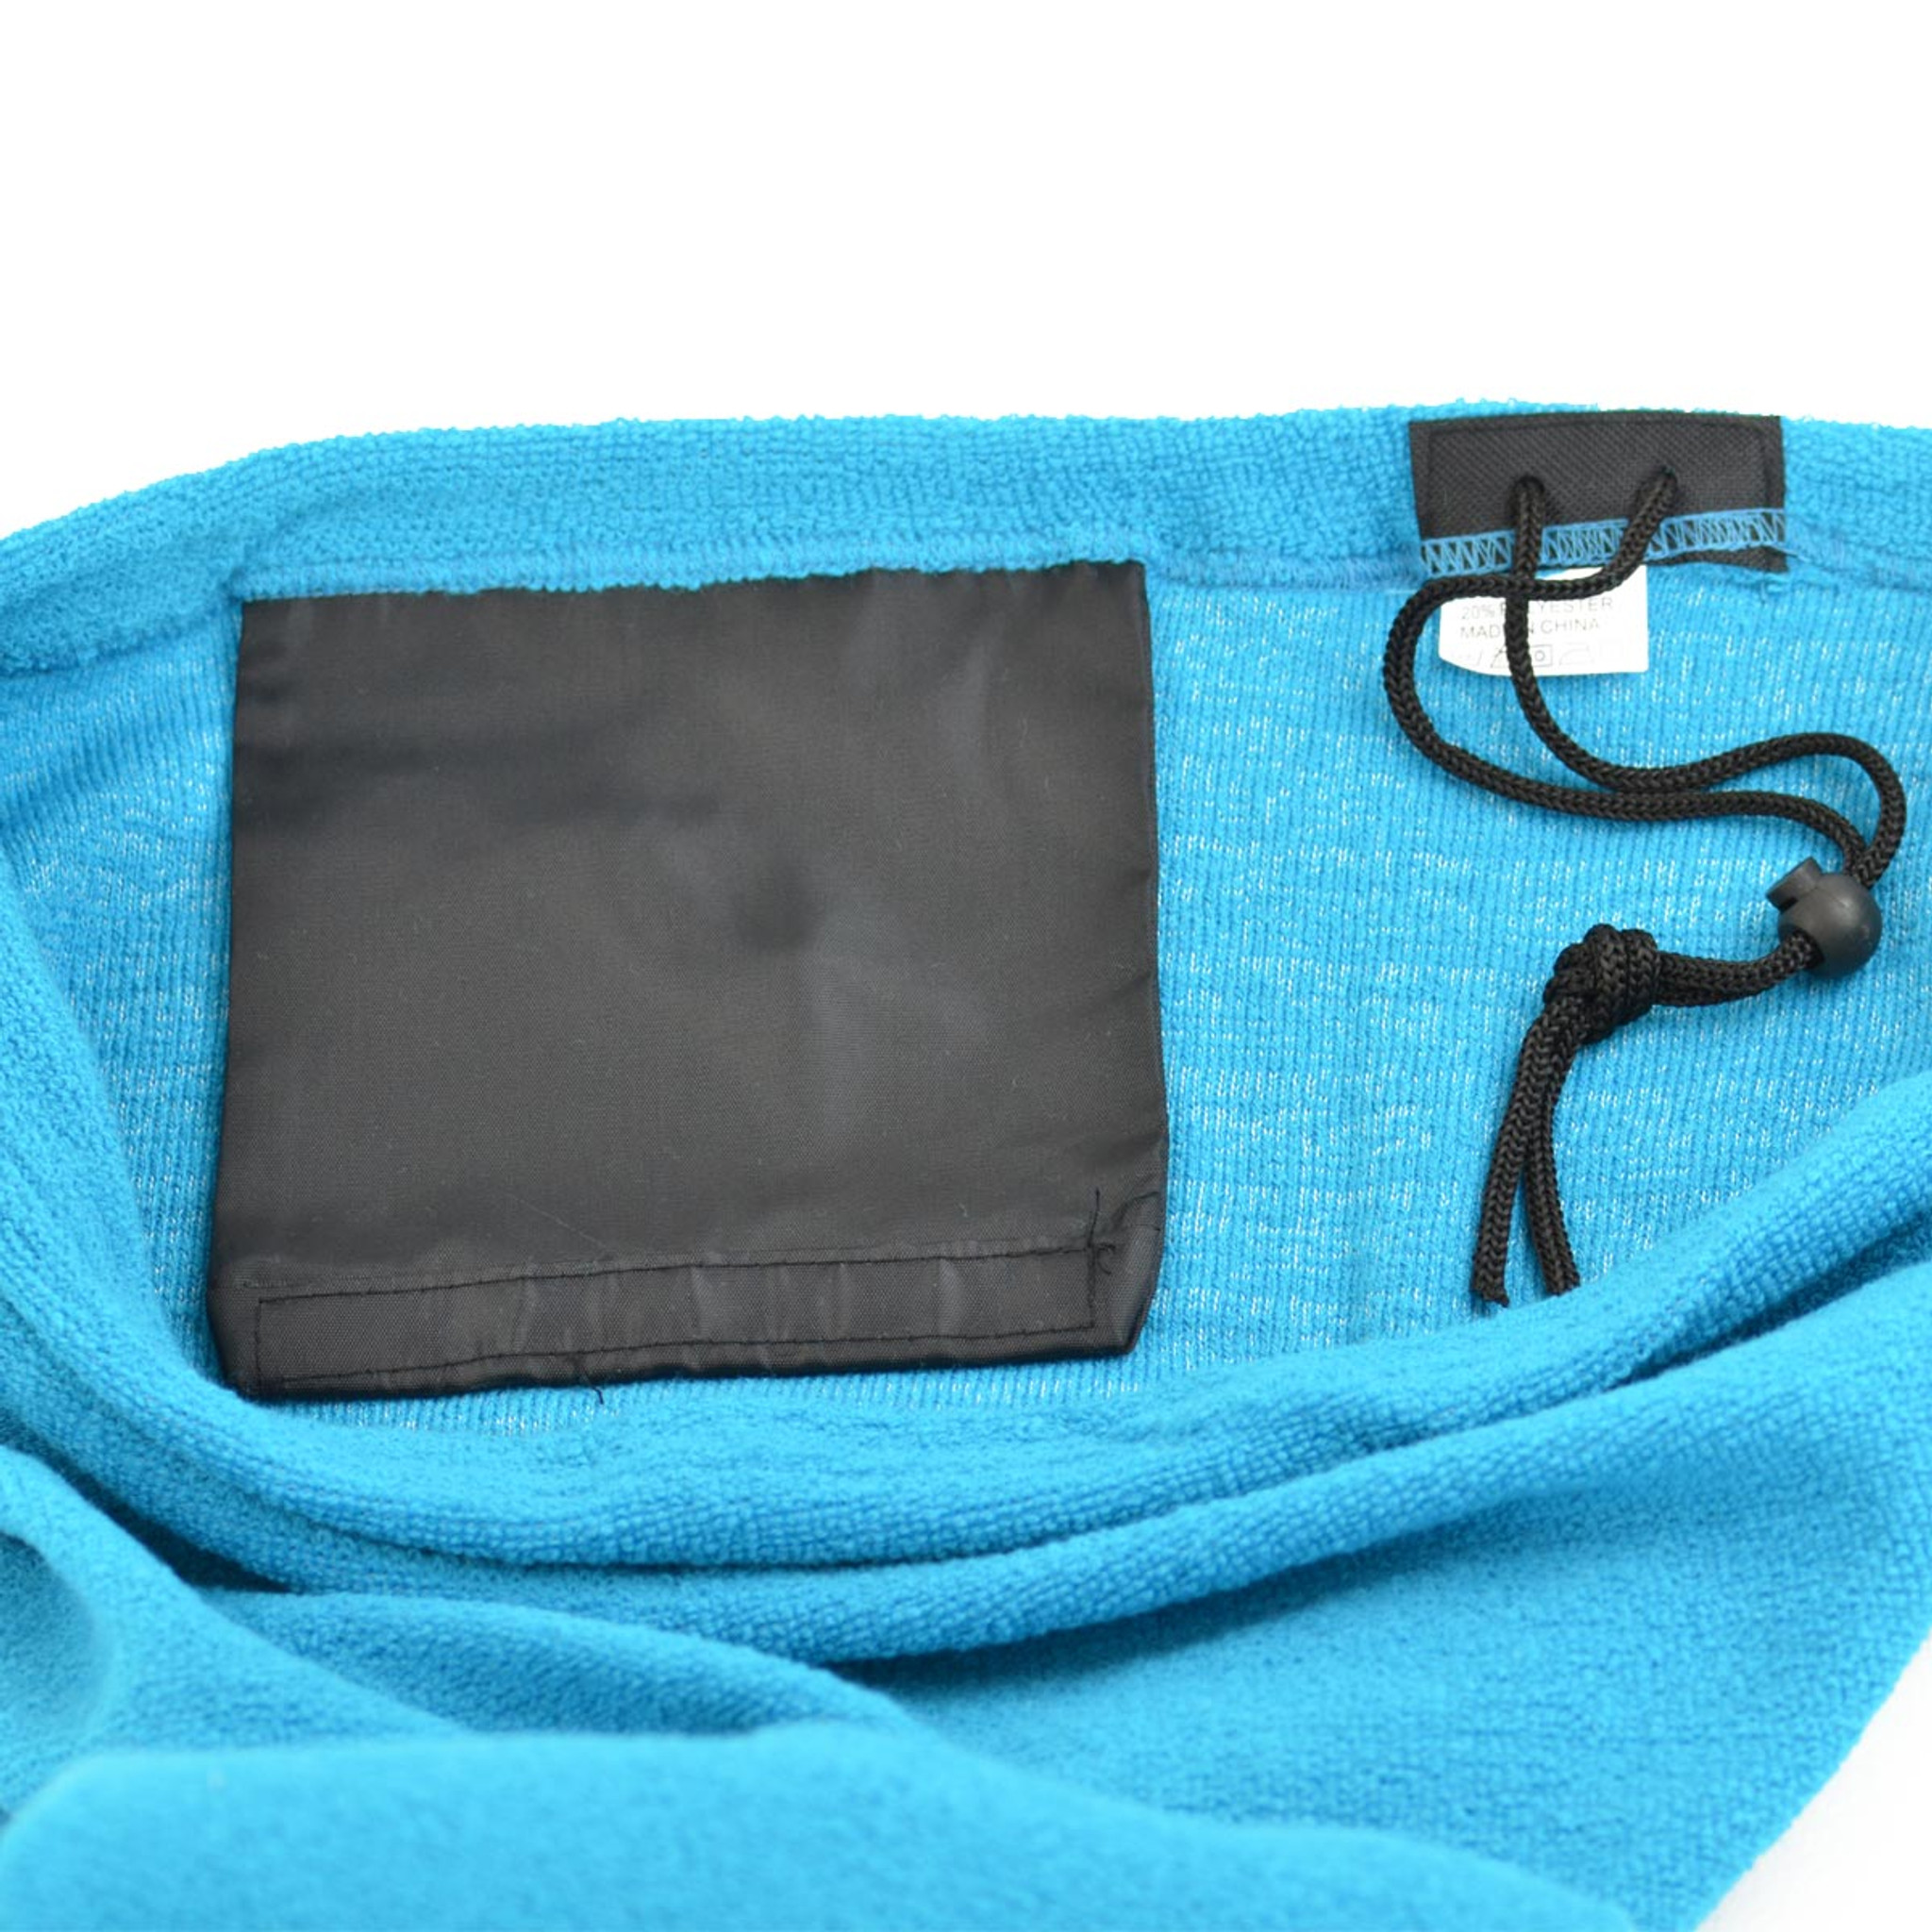 Internal Pocket, Draw String with Barrel Tie and Draw Cord Cover Protector.